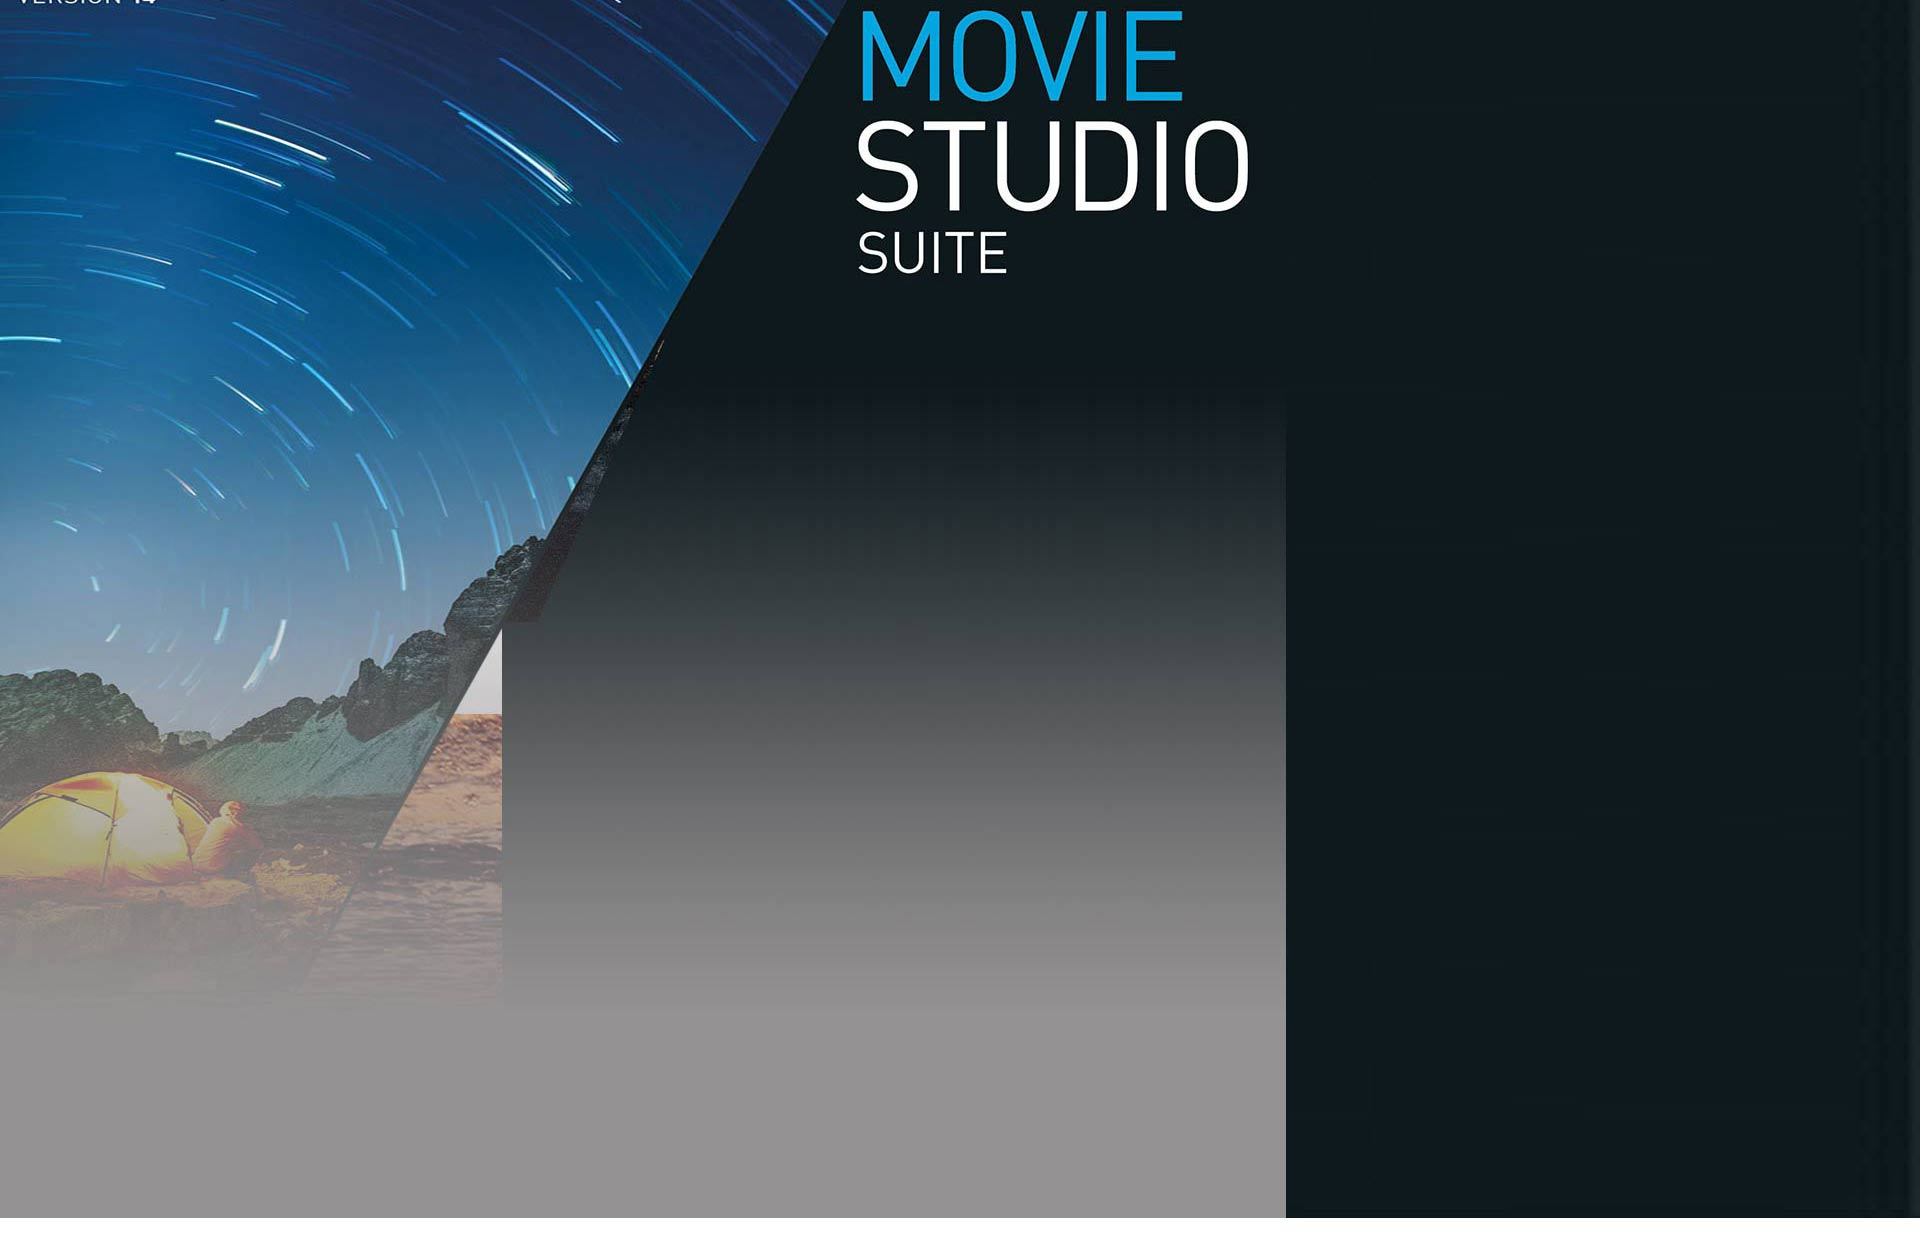 VEGAS Movie Studio 14 Suite